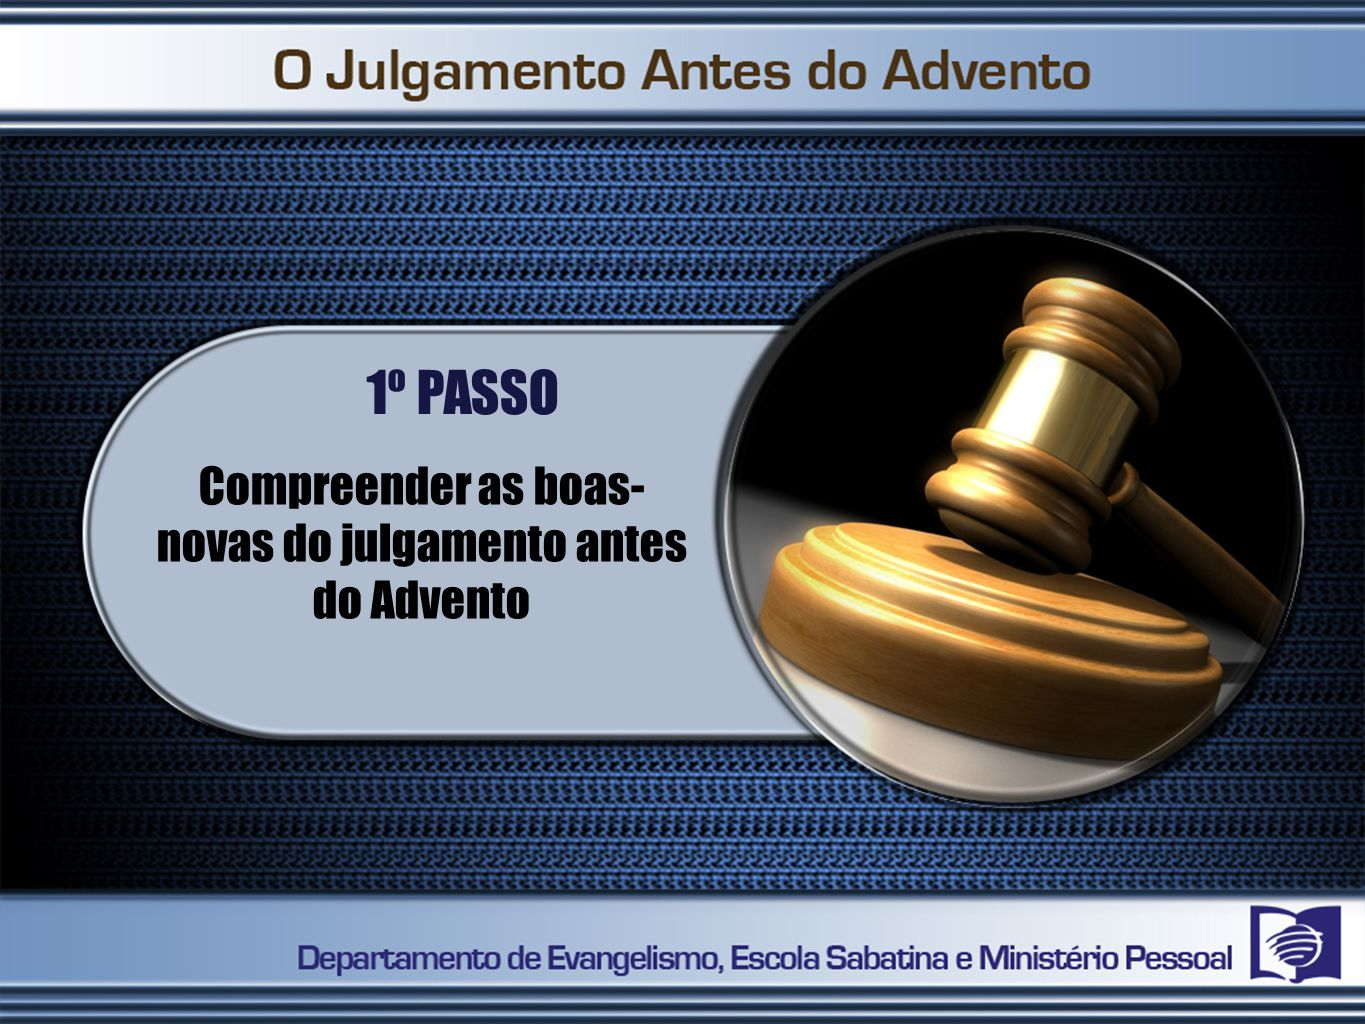 1º PASSO Compreender as boas- novas do julgamento antes do Advento